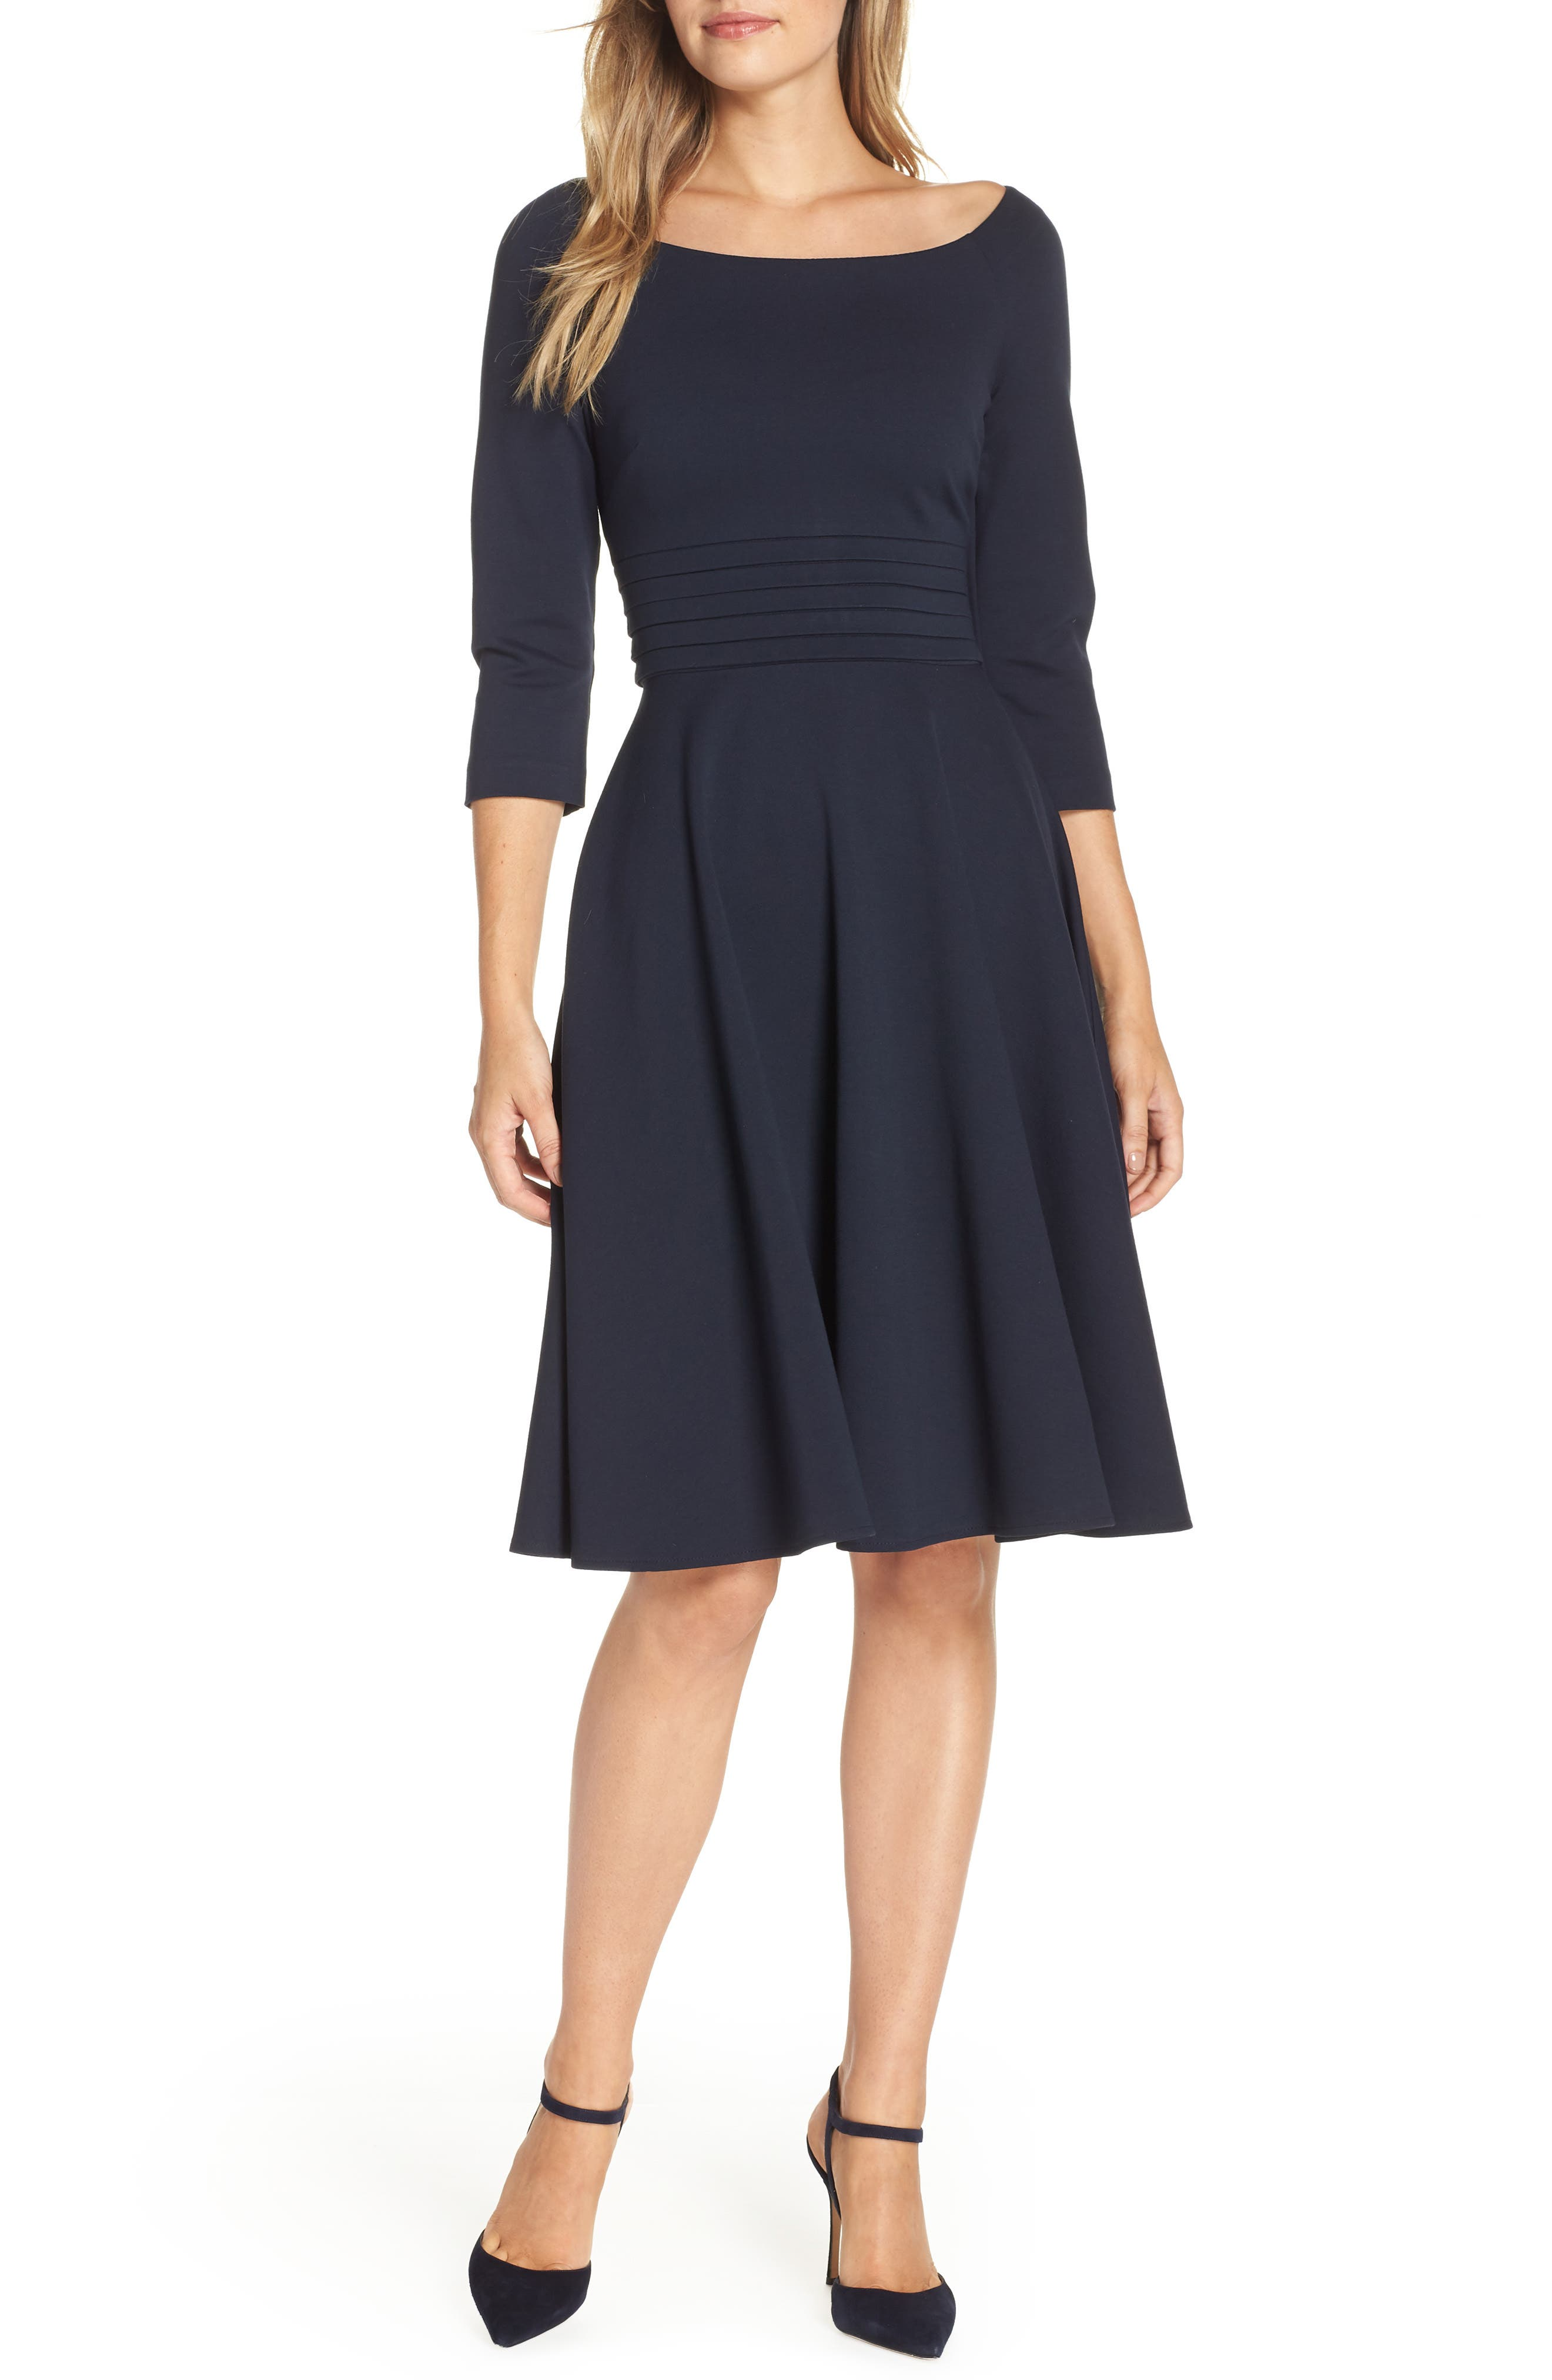 HARPER ROSE, Pleated Waist Fit & Flare Dress, Main thumbnail 1, color, 410